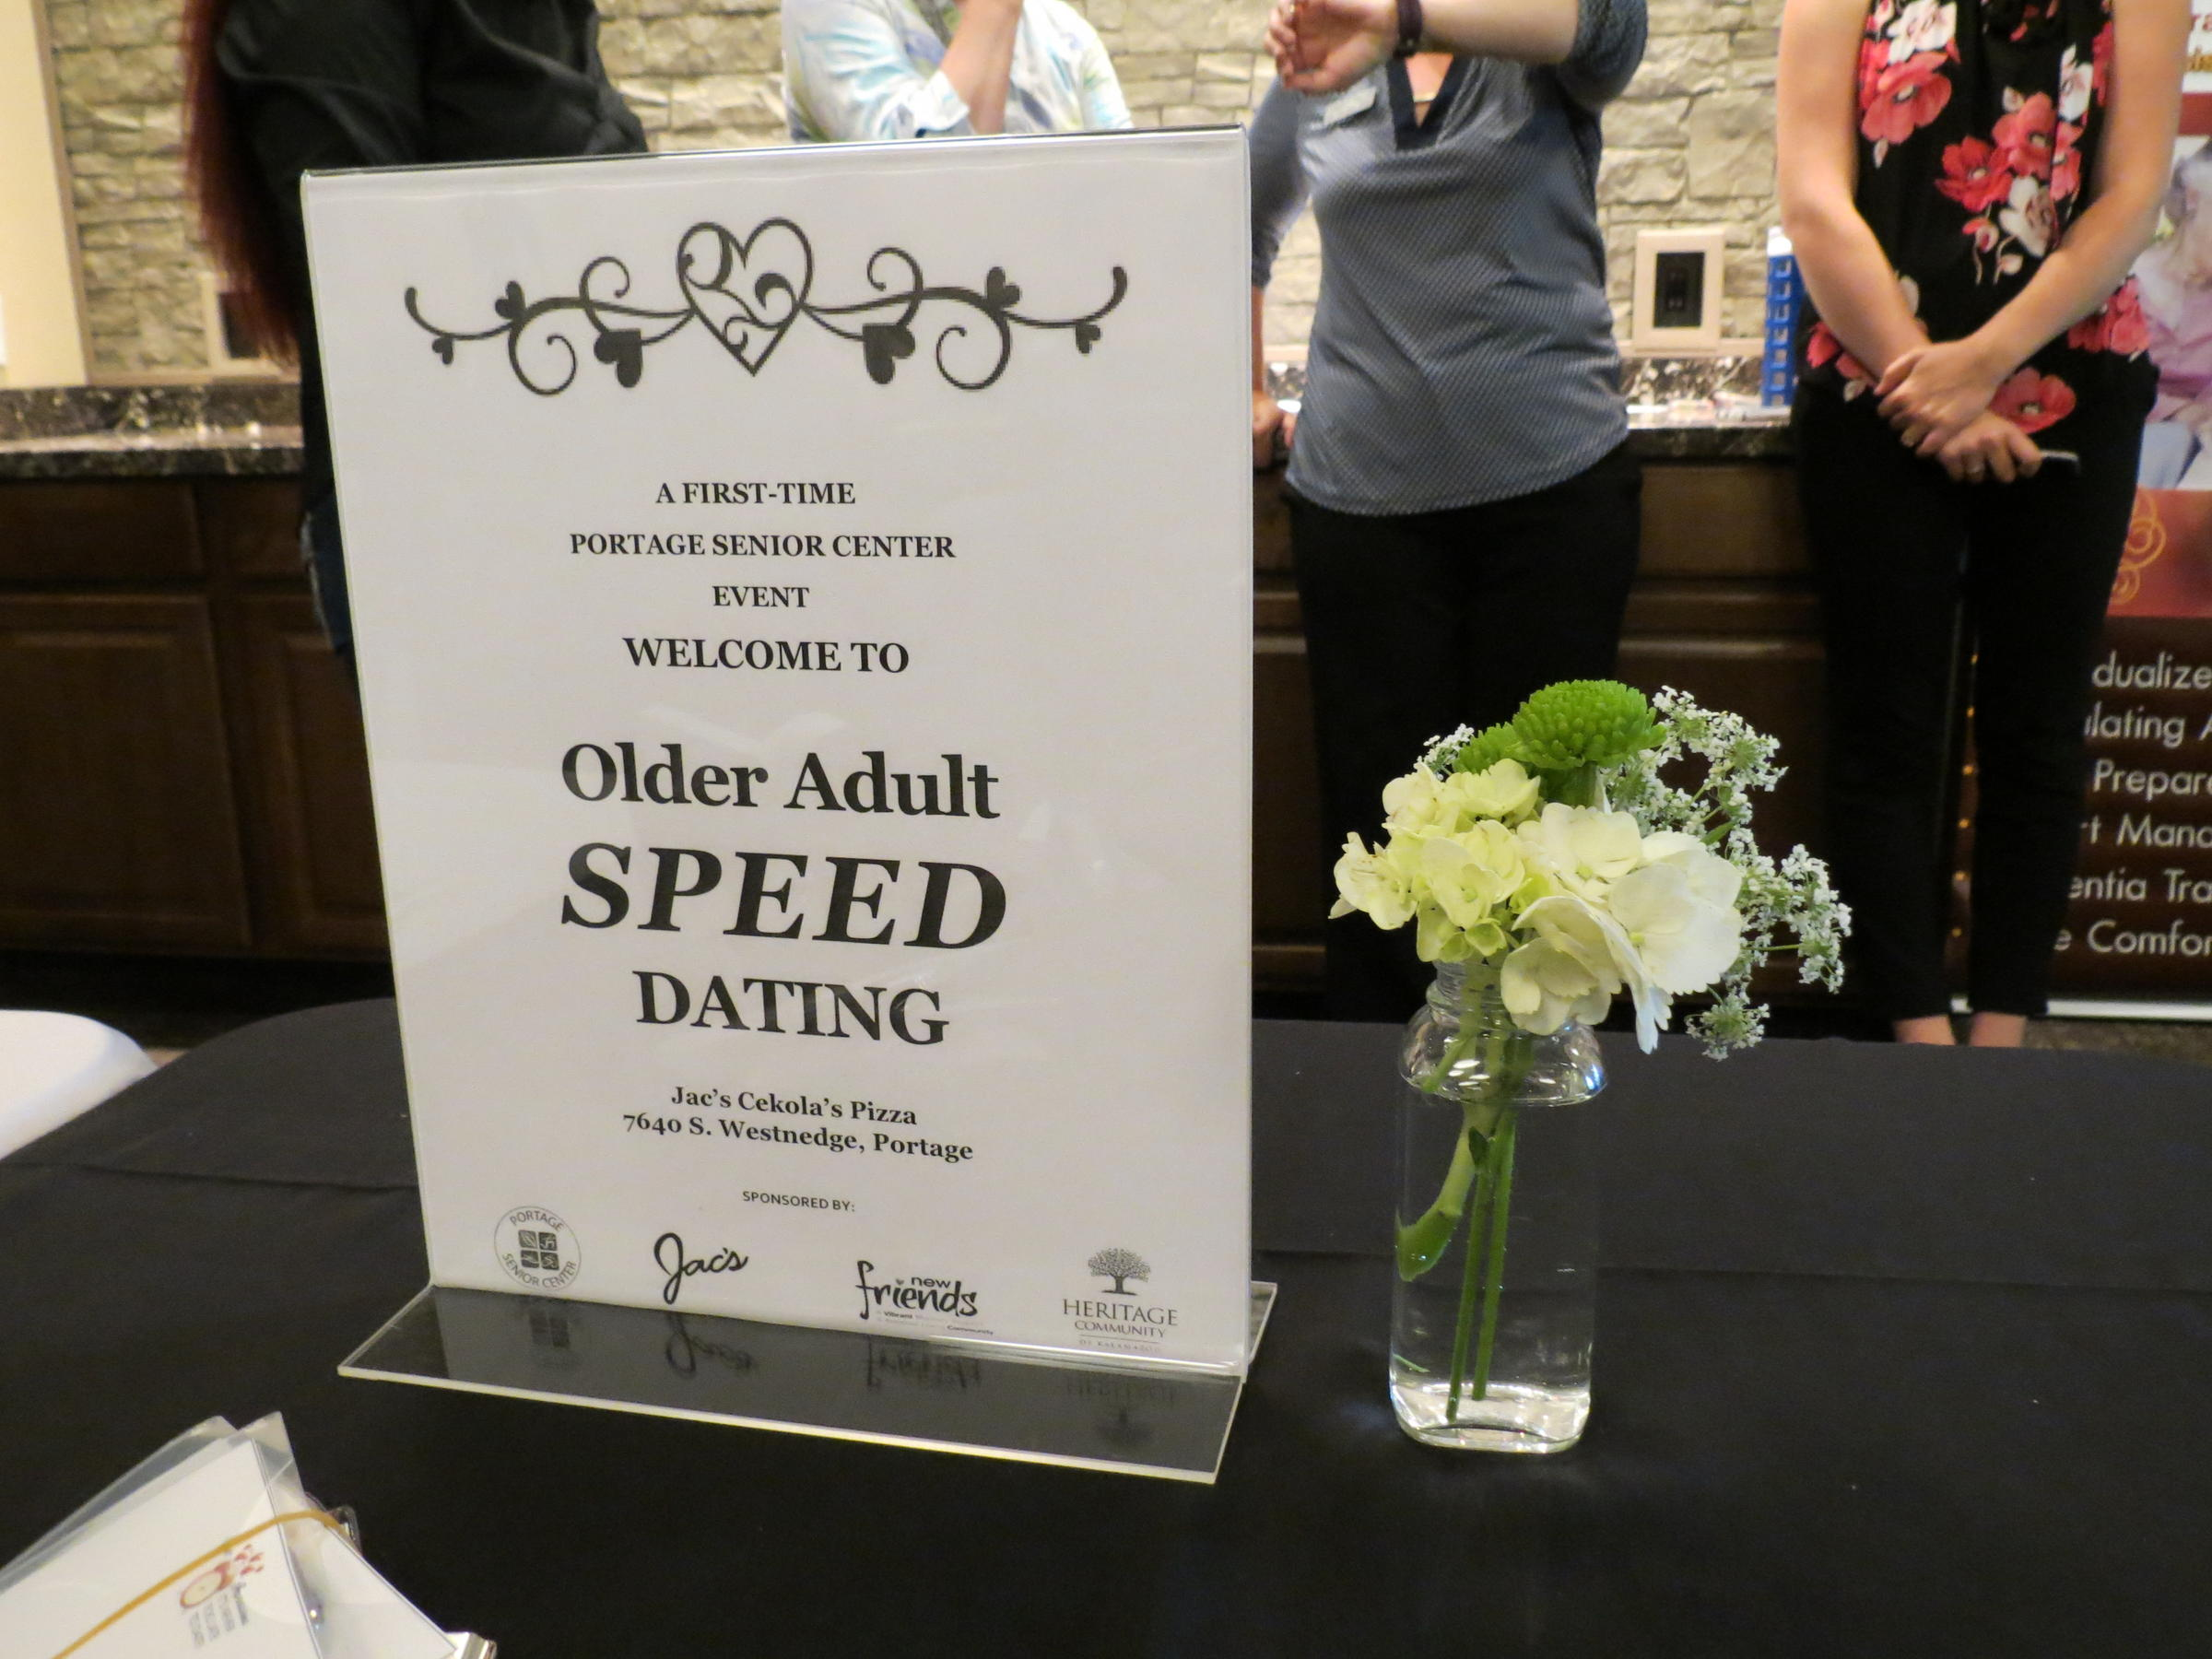 Speed dating events over 40 events in Boston MA